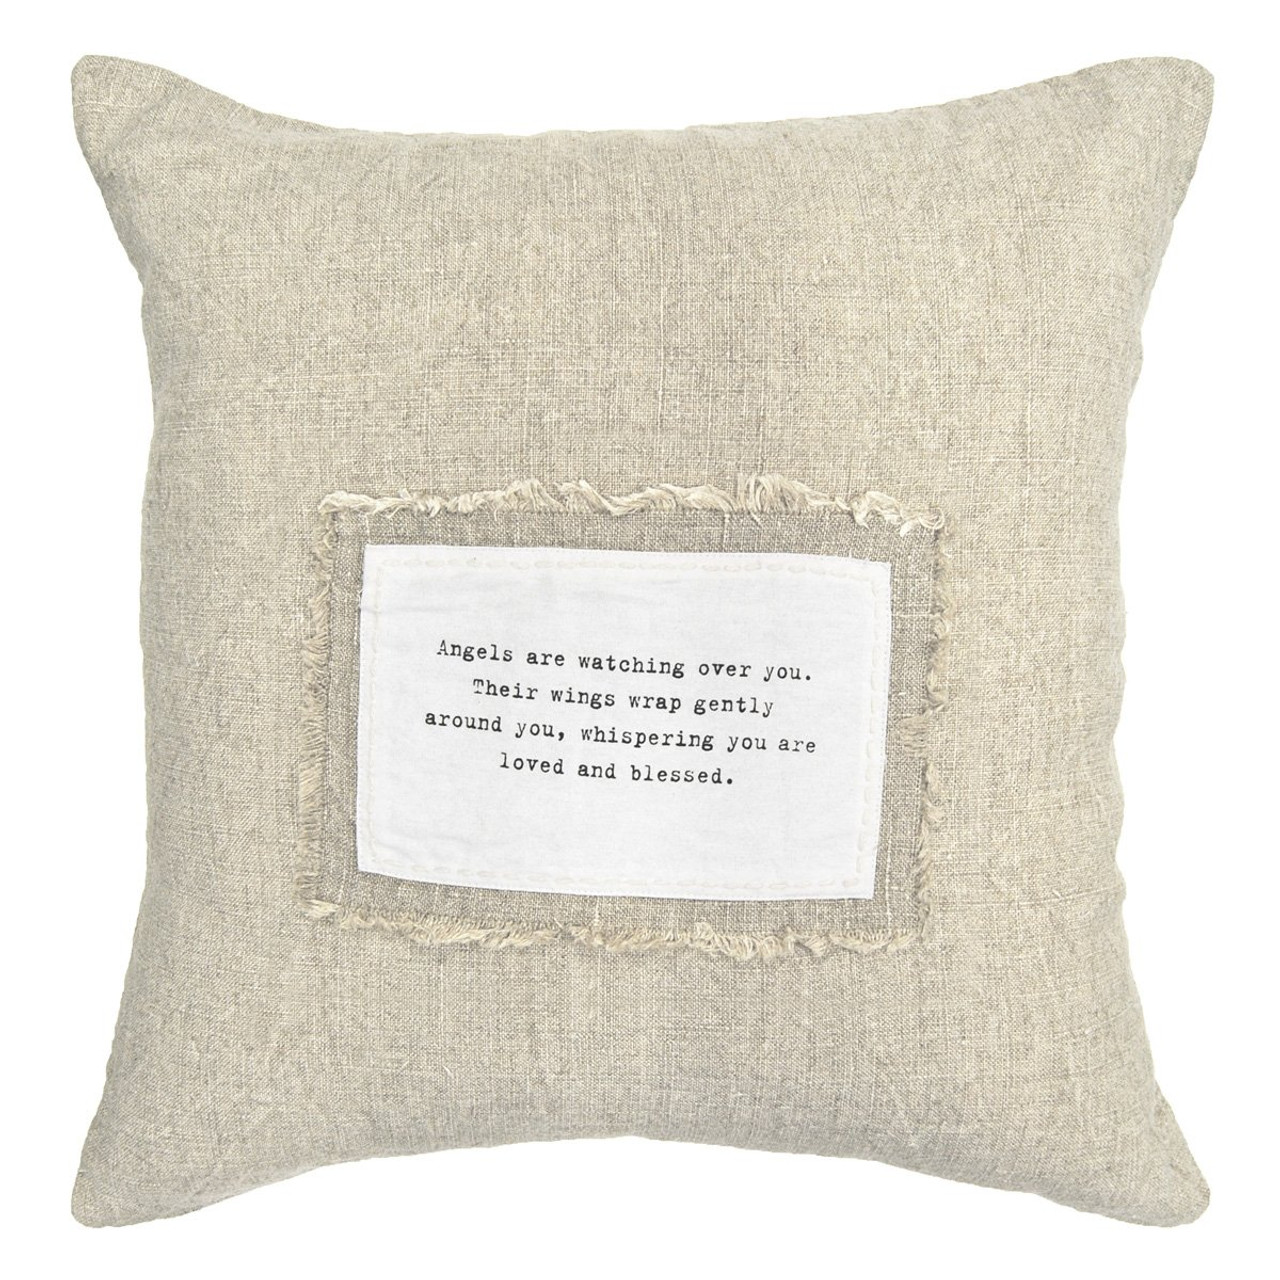 angels are watching patch pillow